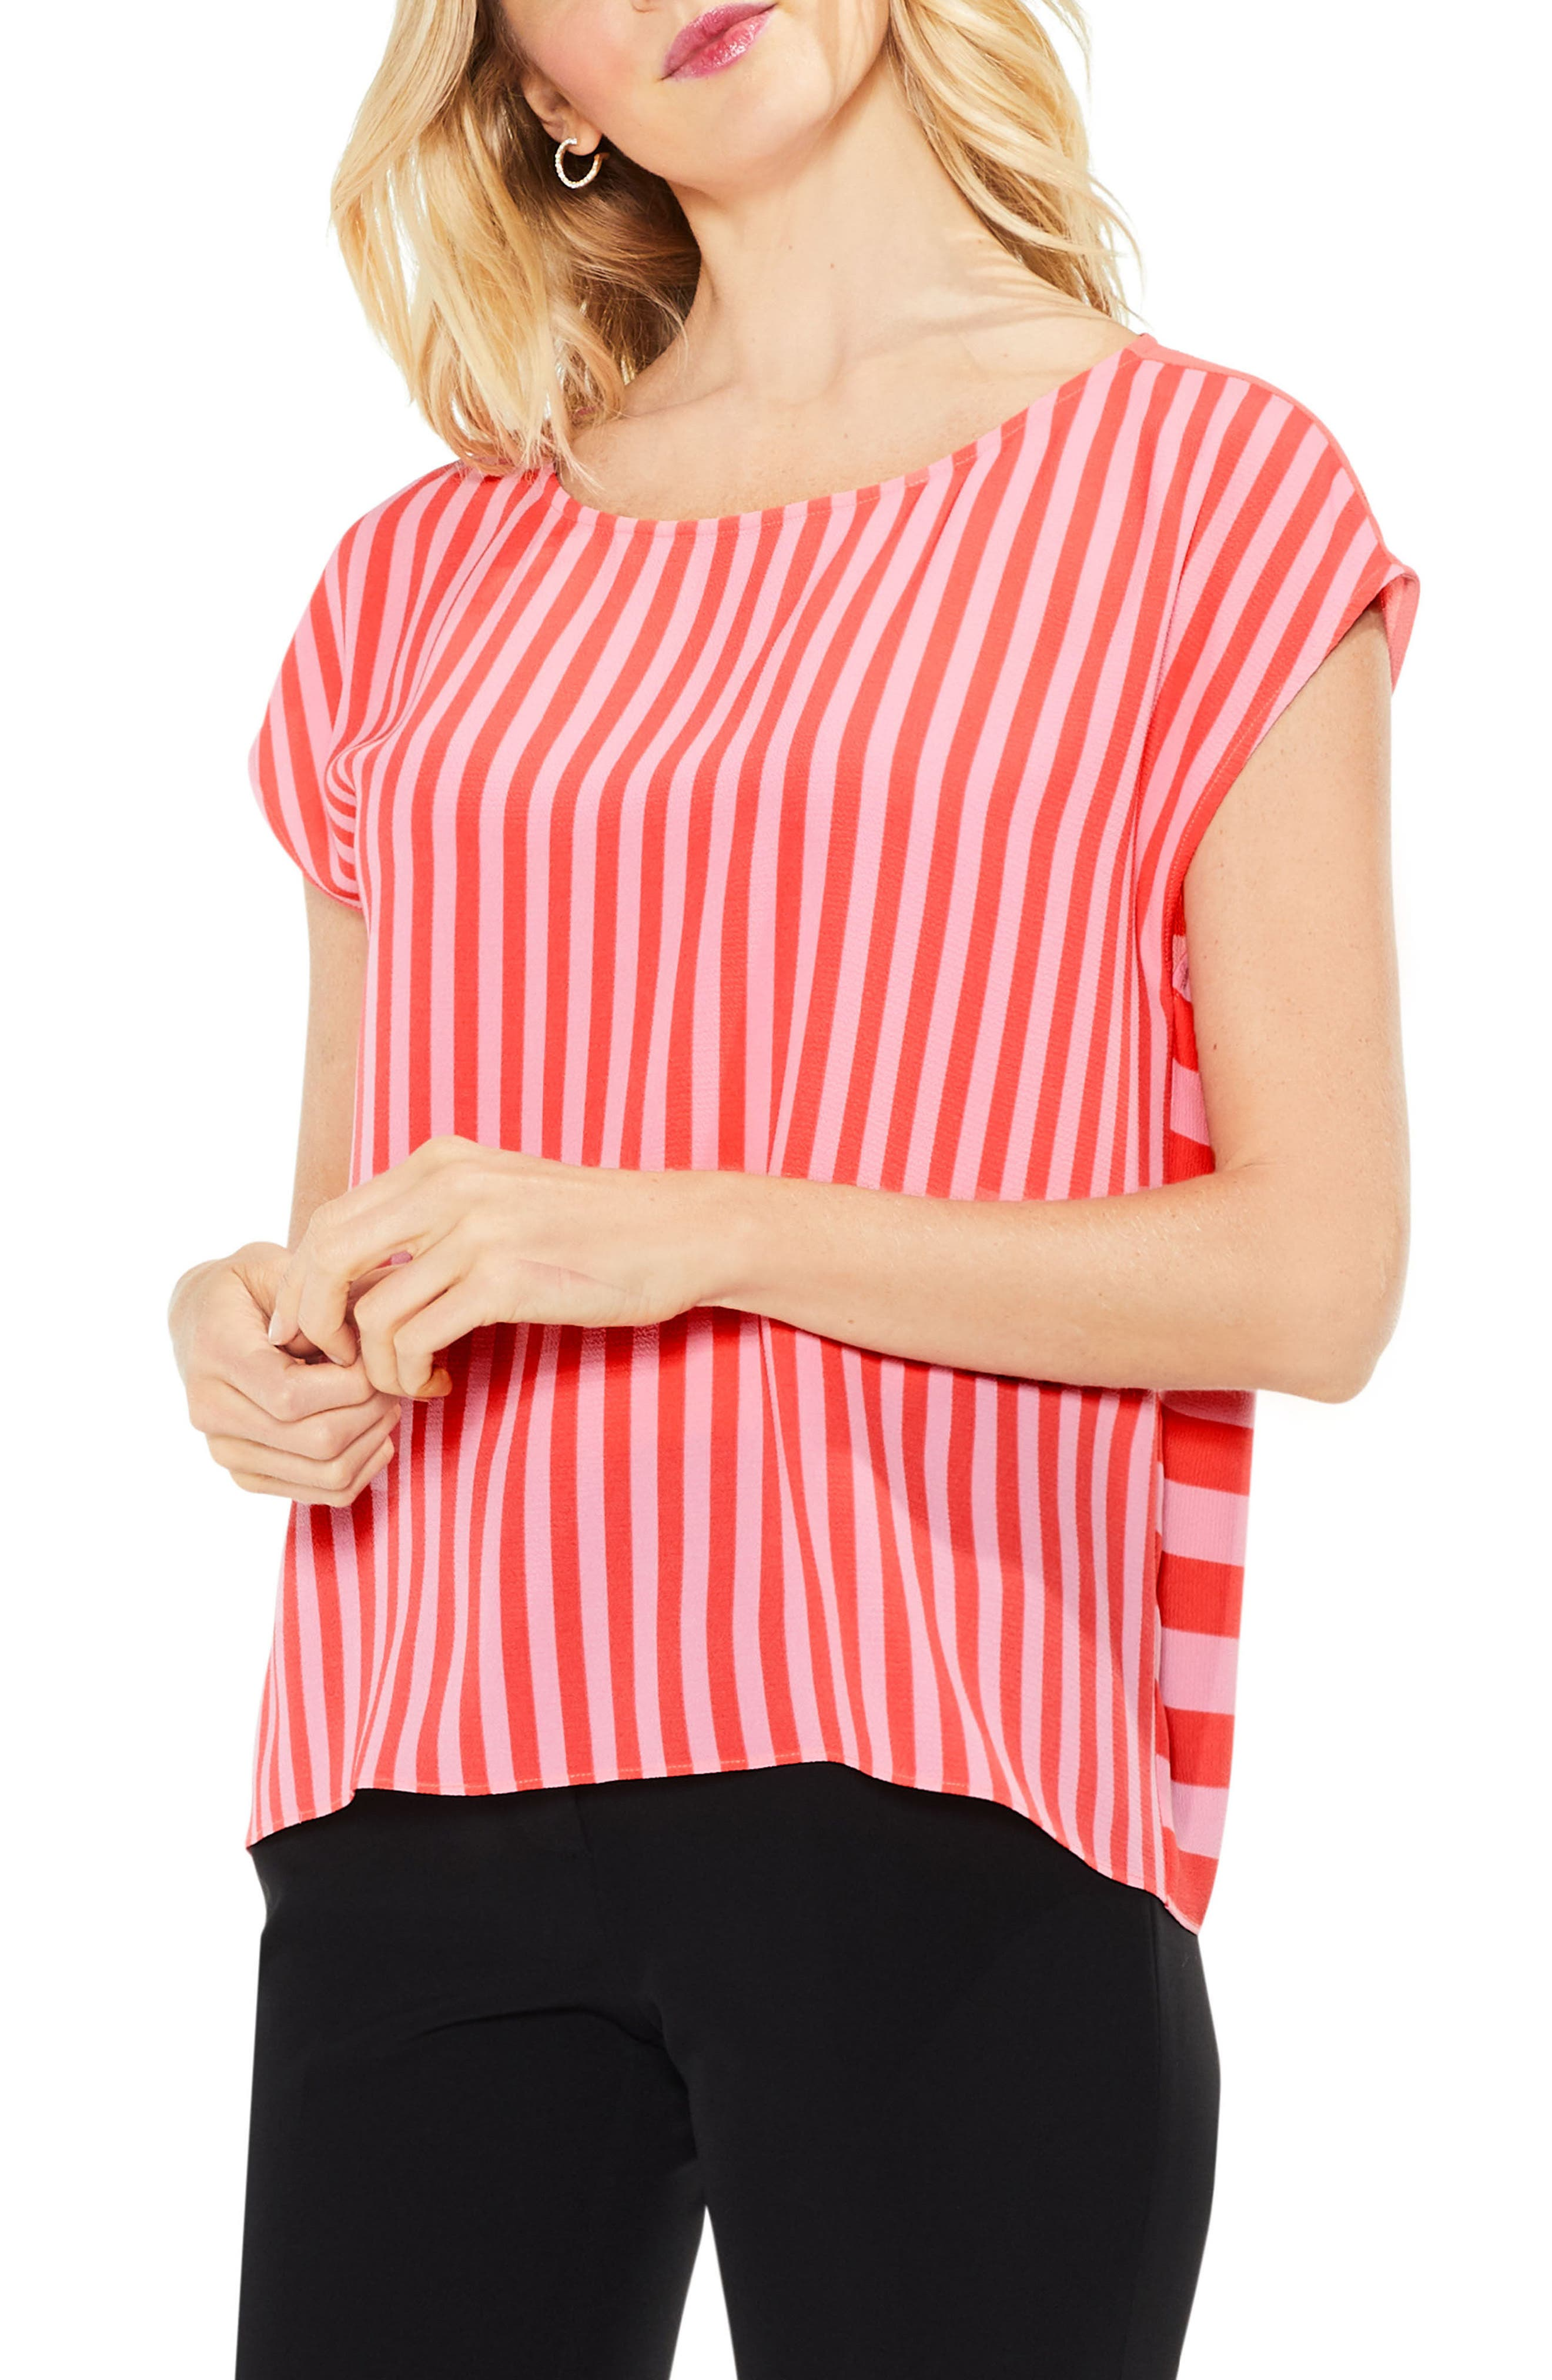 Alternate Image 1 Selected - Vince Camuto Mixed Stripe Top